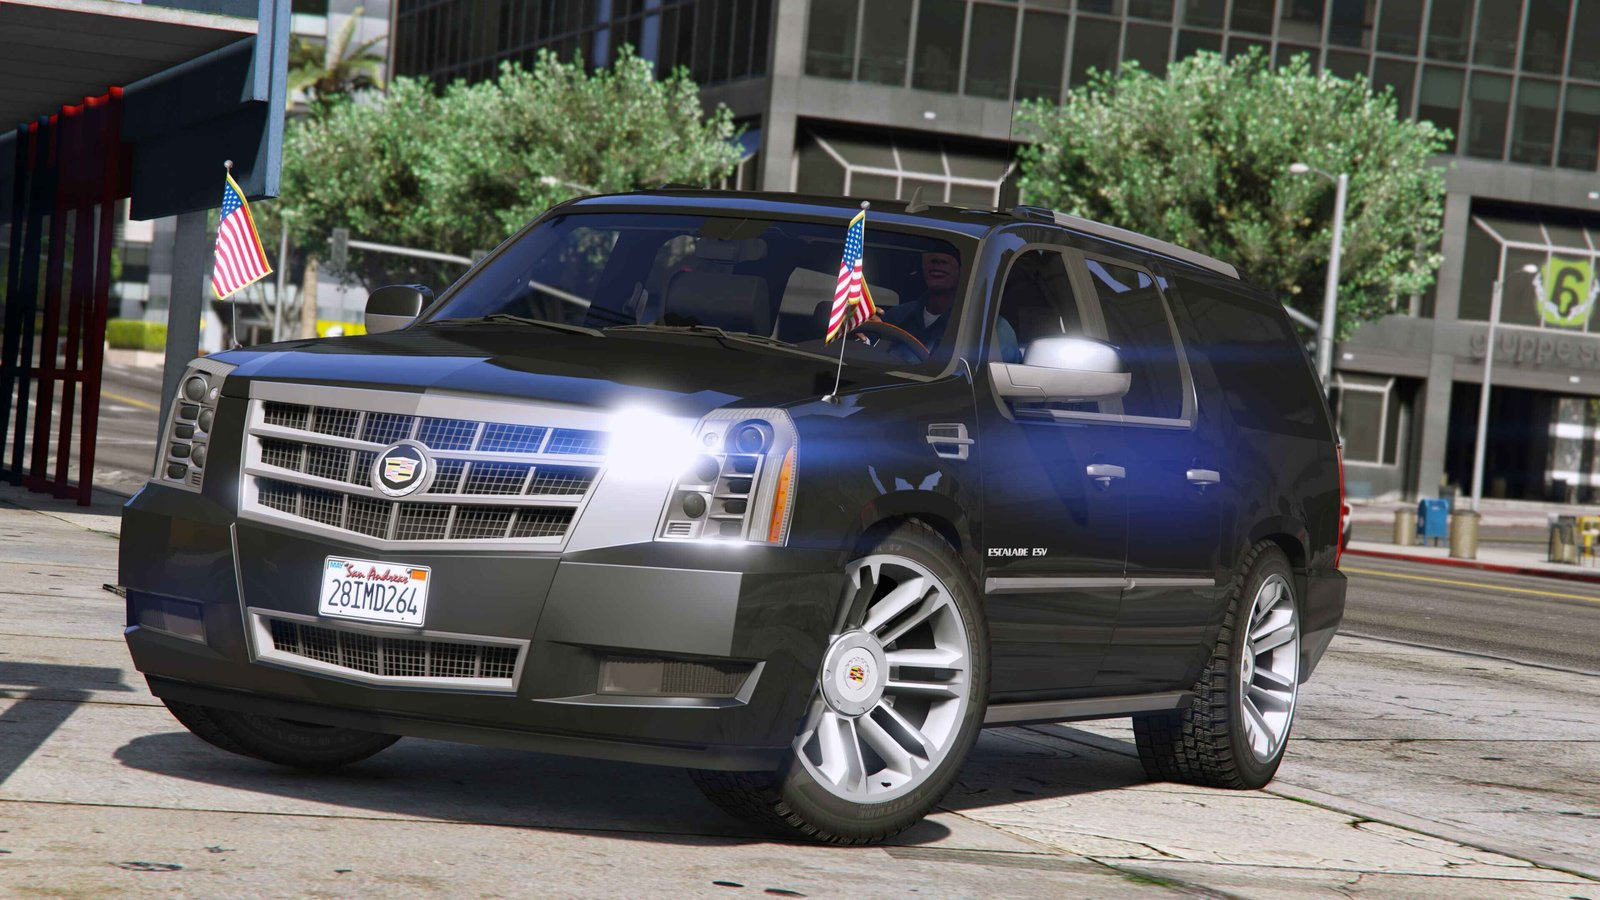 Gta Modding Com Download Area 187 Gta V 187 Cars 187 Cadillac